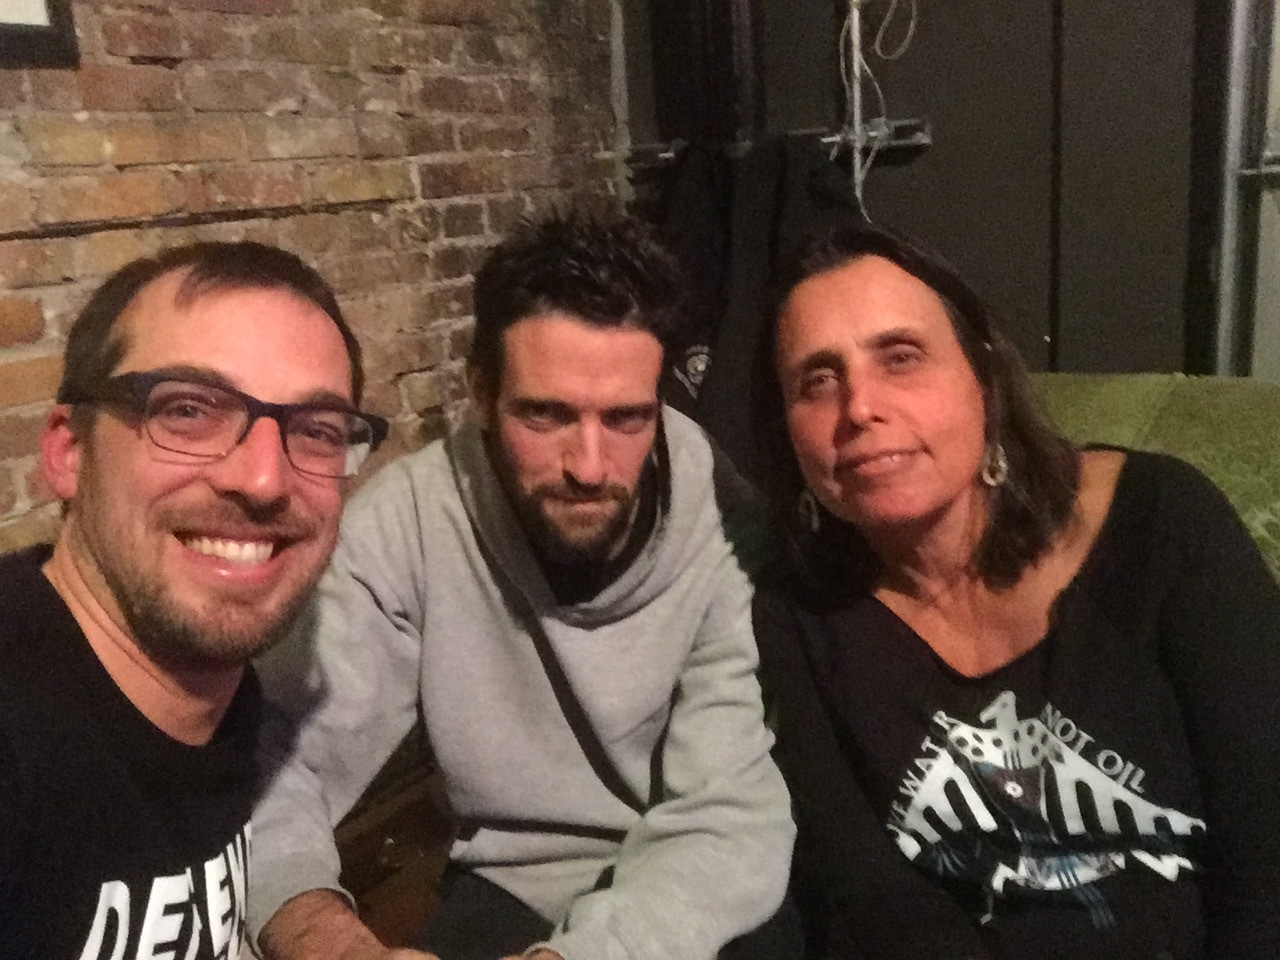 John Doberstein, Allen Richardson and Winona LaDuke